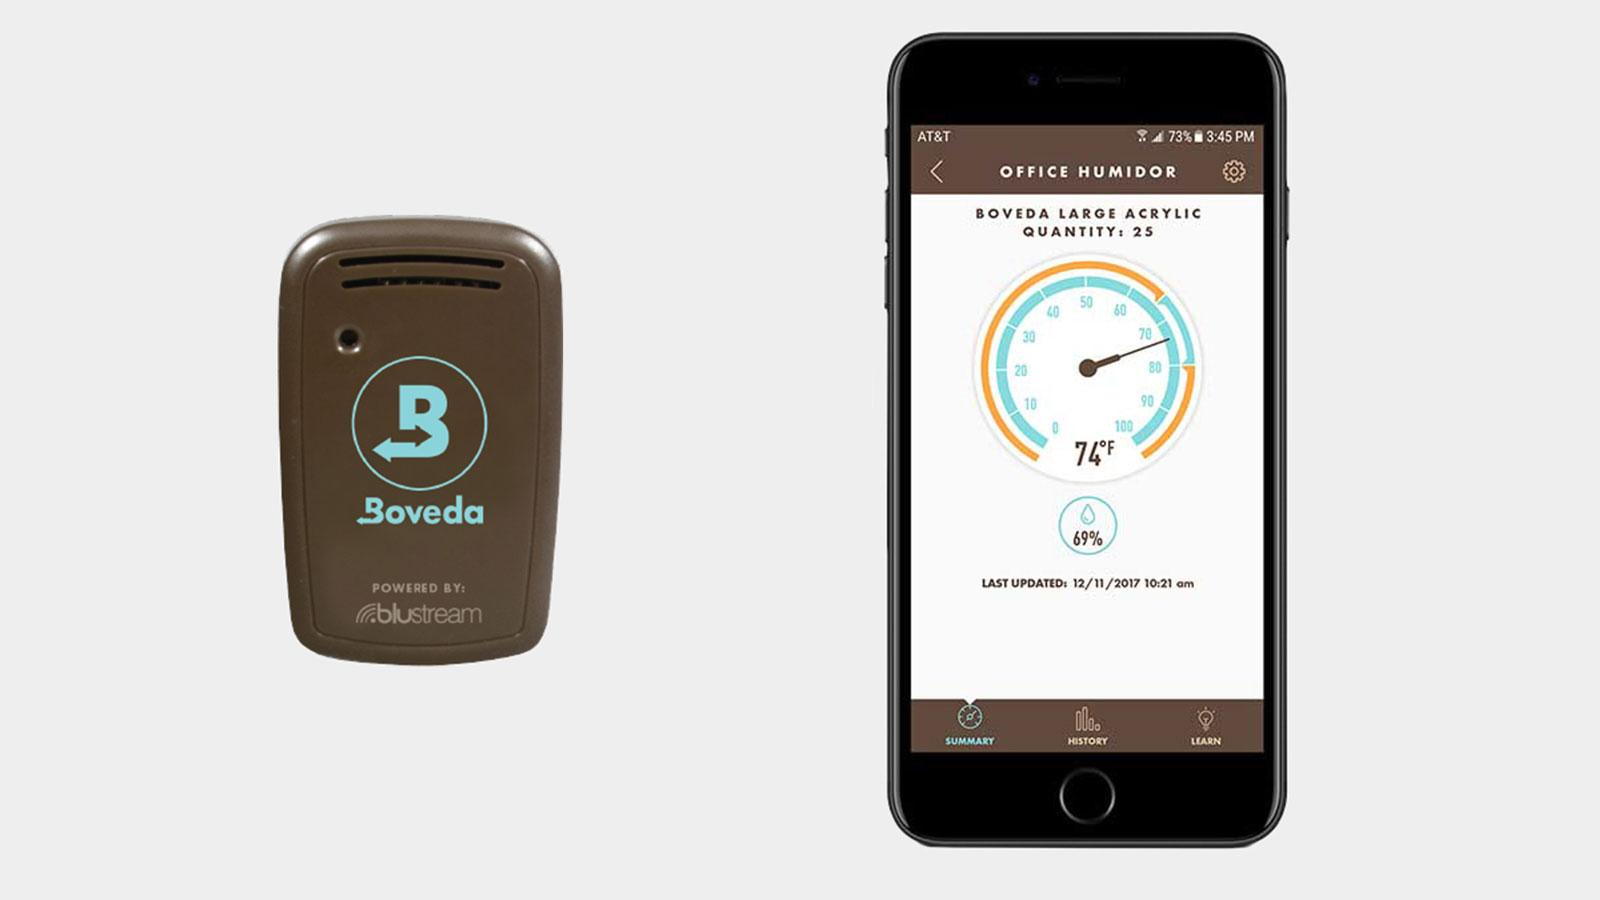 Boveda Brings Smart Sensor Device To Humidors